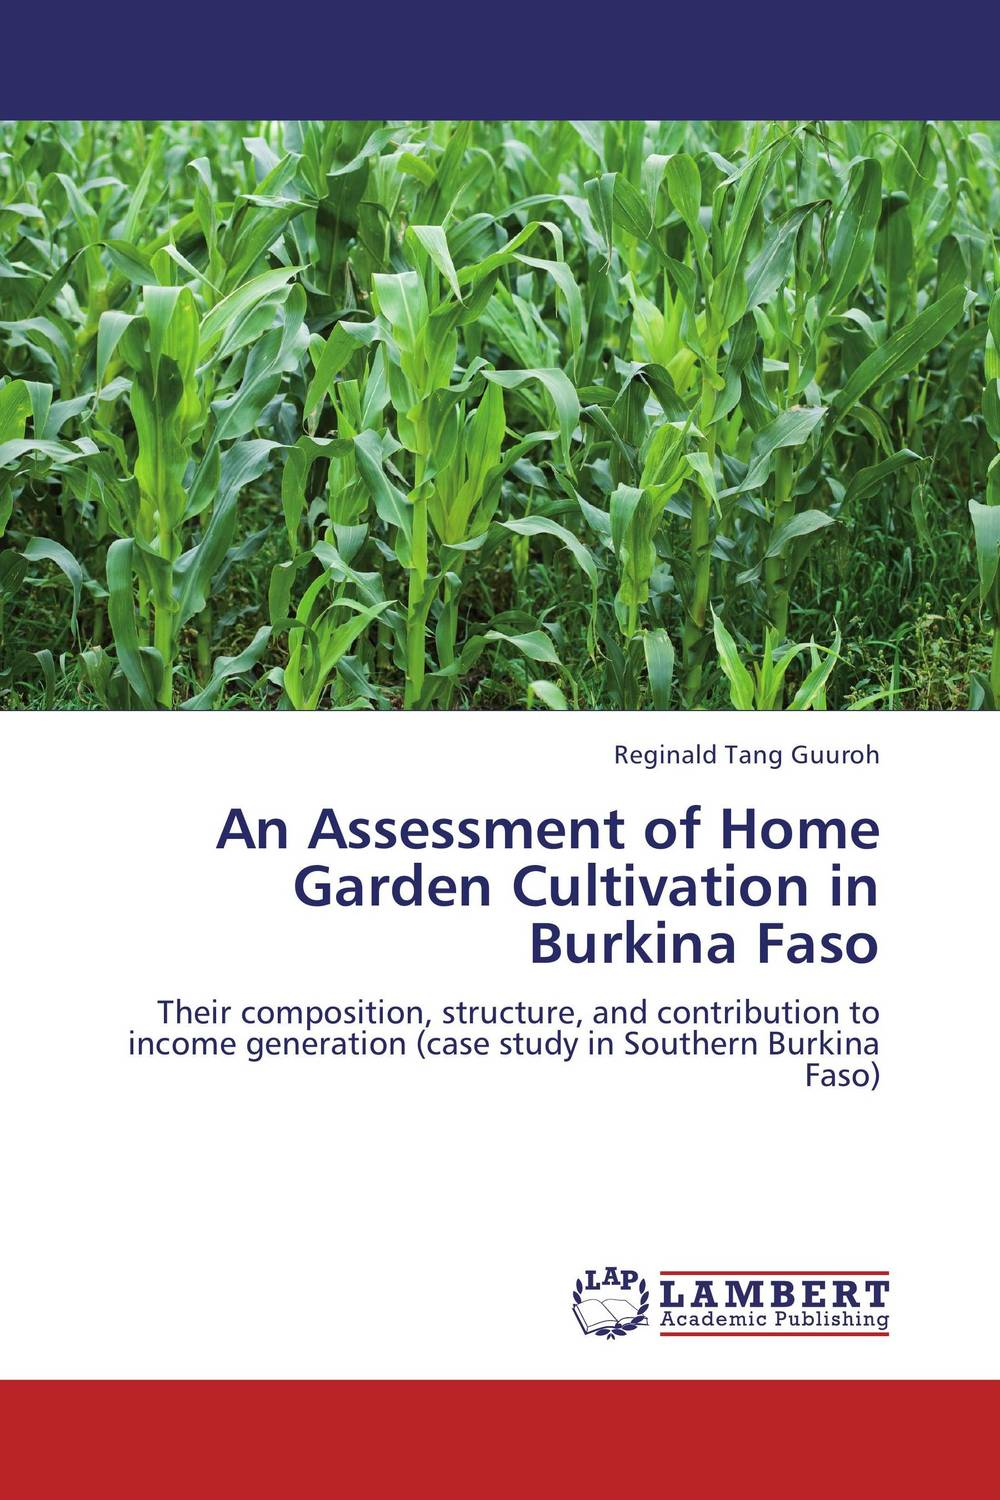 An Assessment of Home Garden Cultivation in Burkina Faso